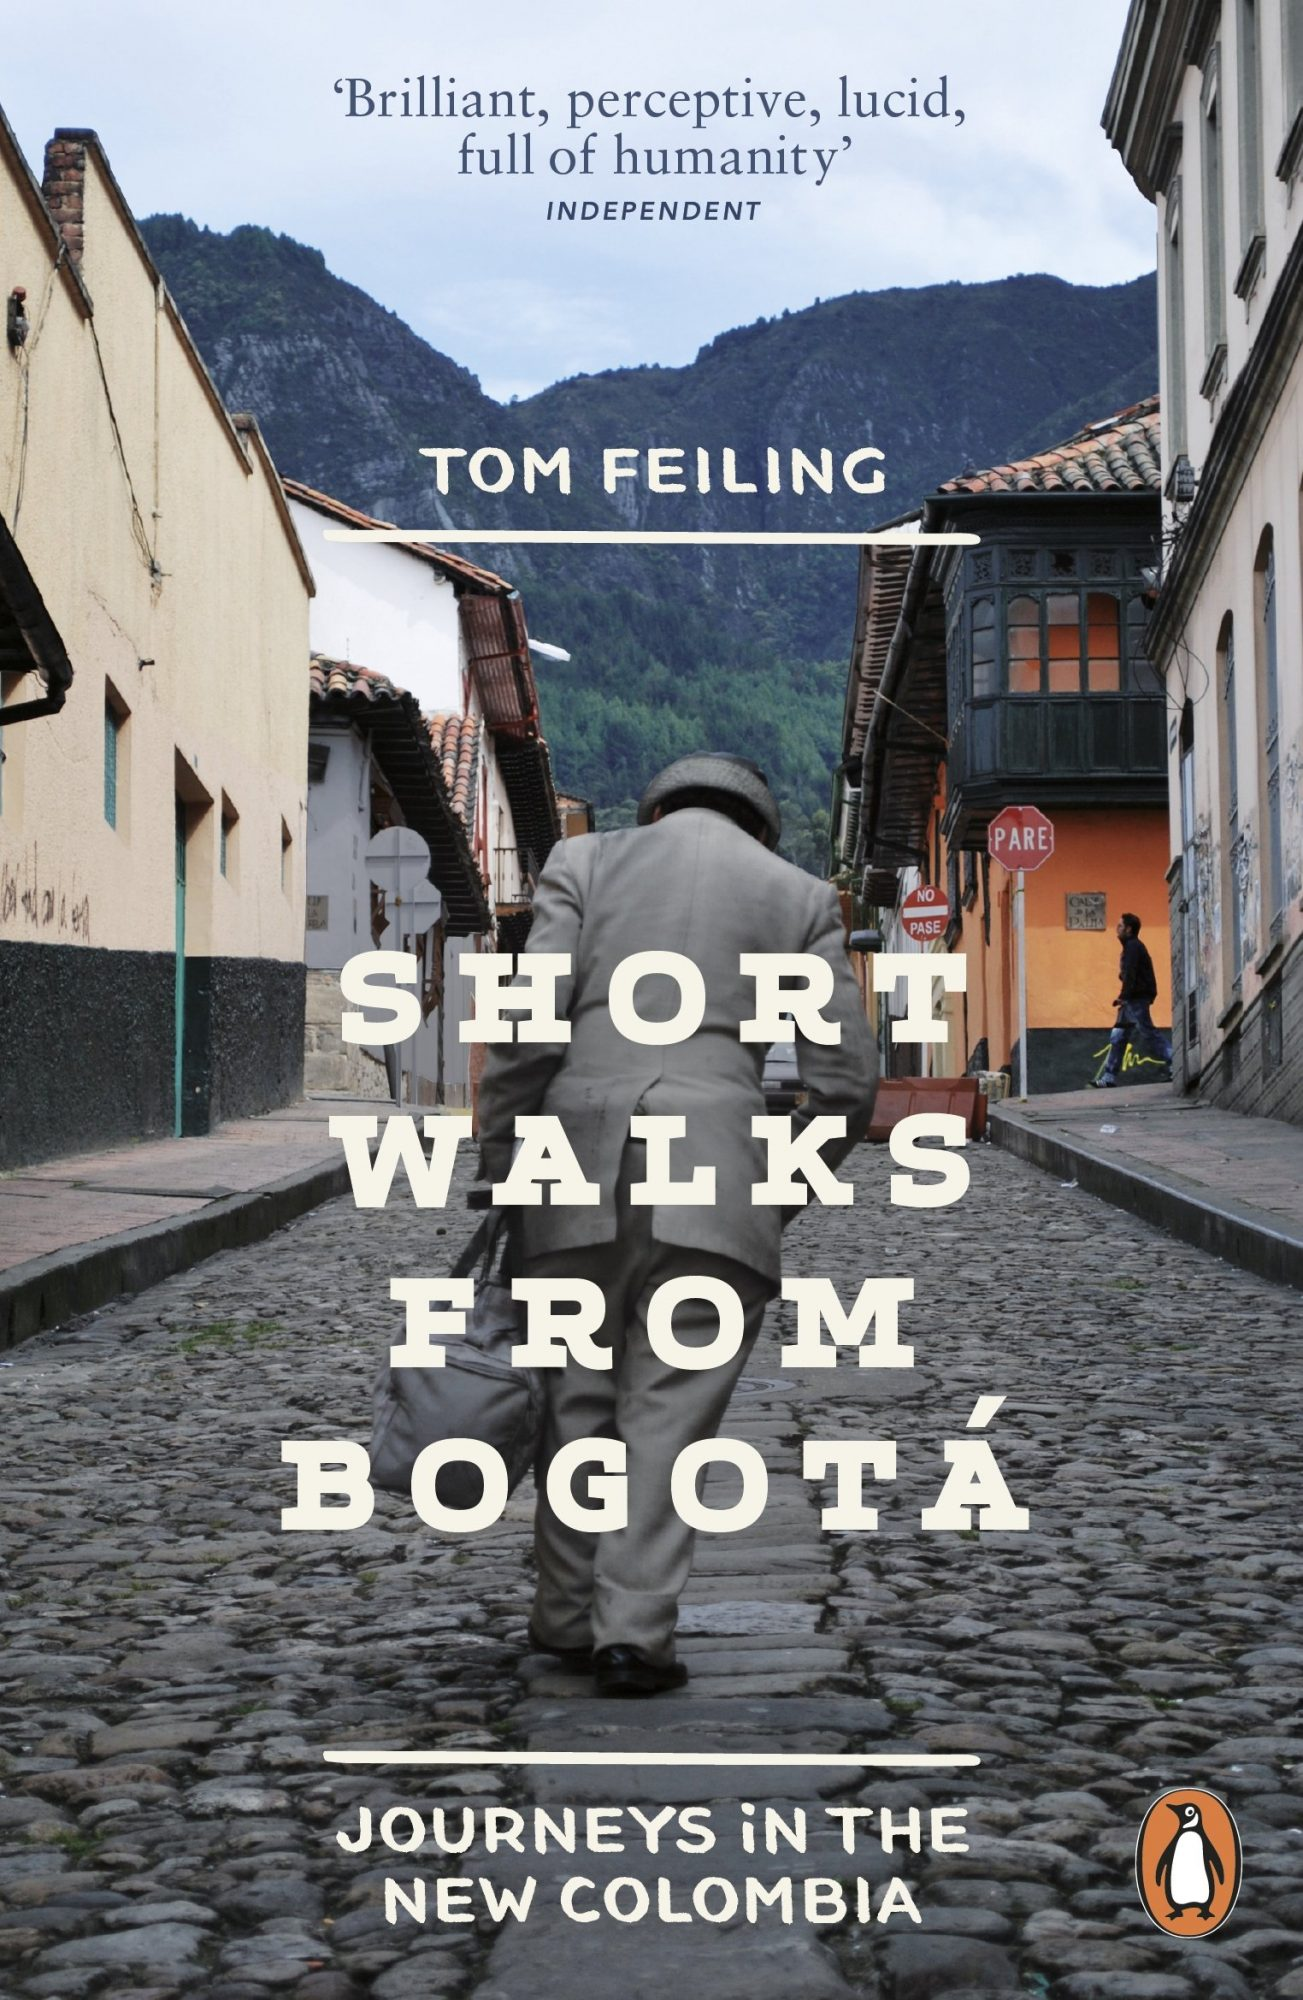 Short Walks from Bogota: Journeys in the New Colombia by Tom Feiling